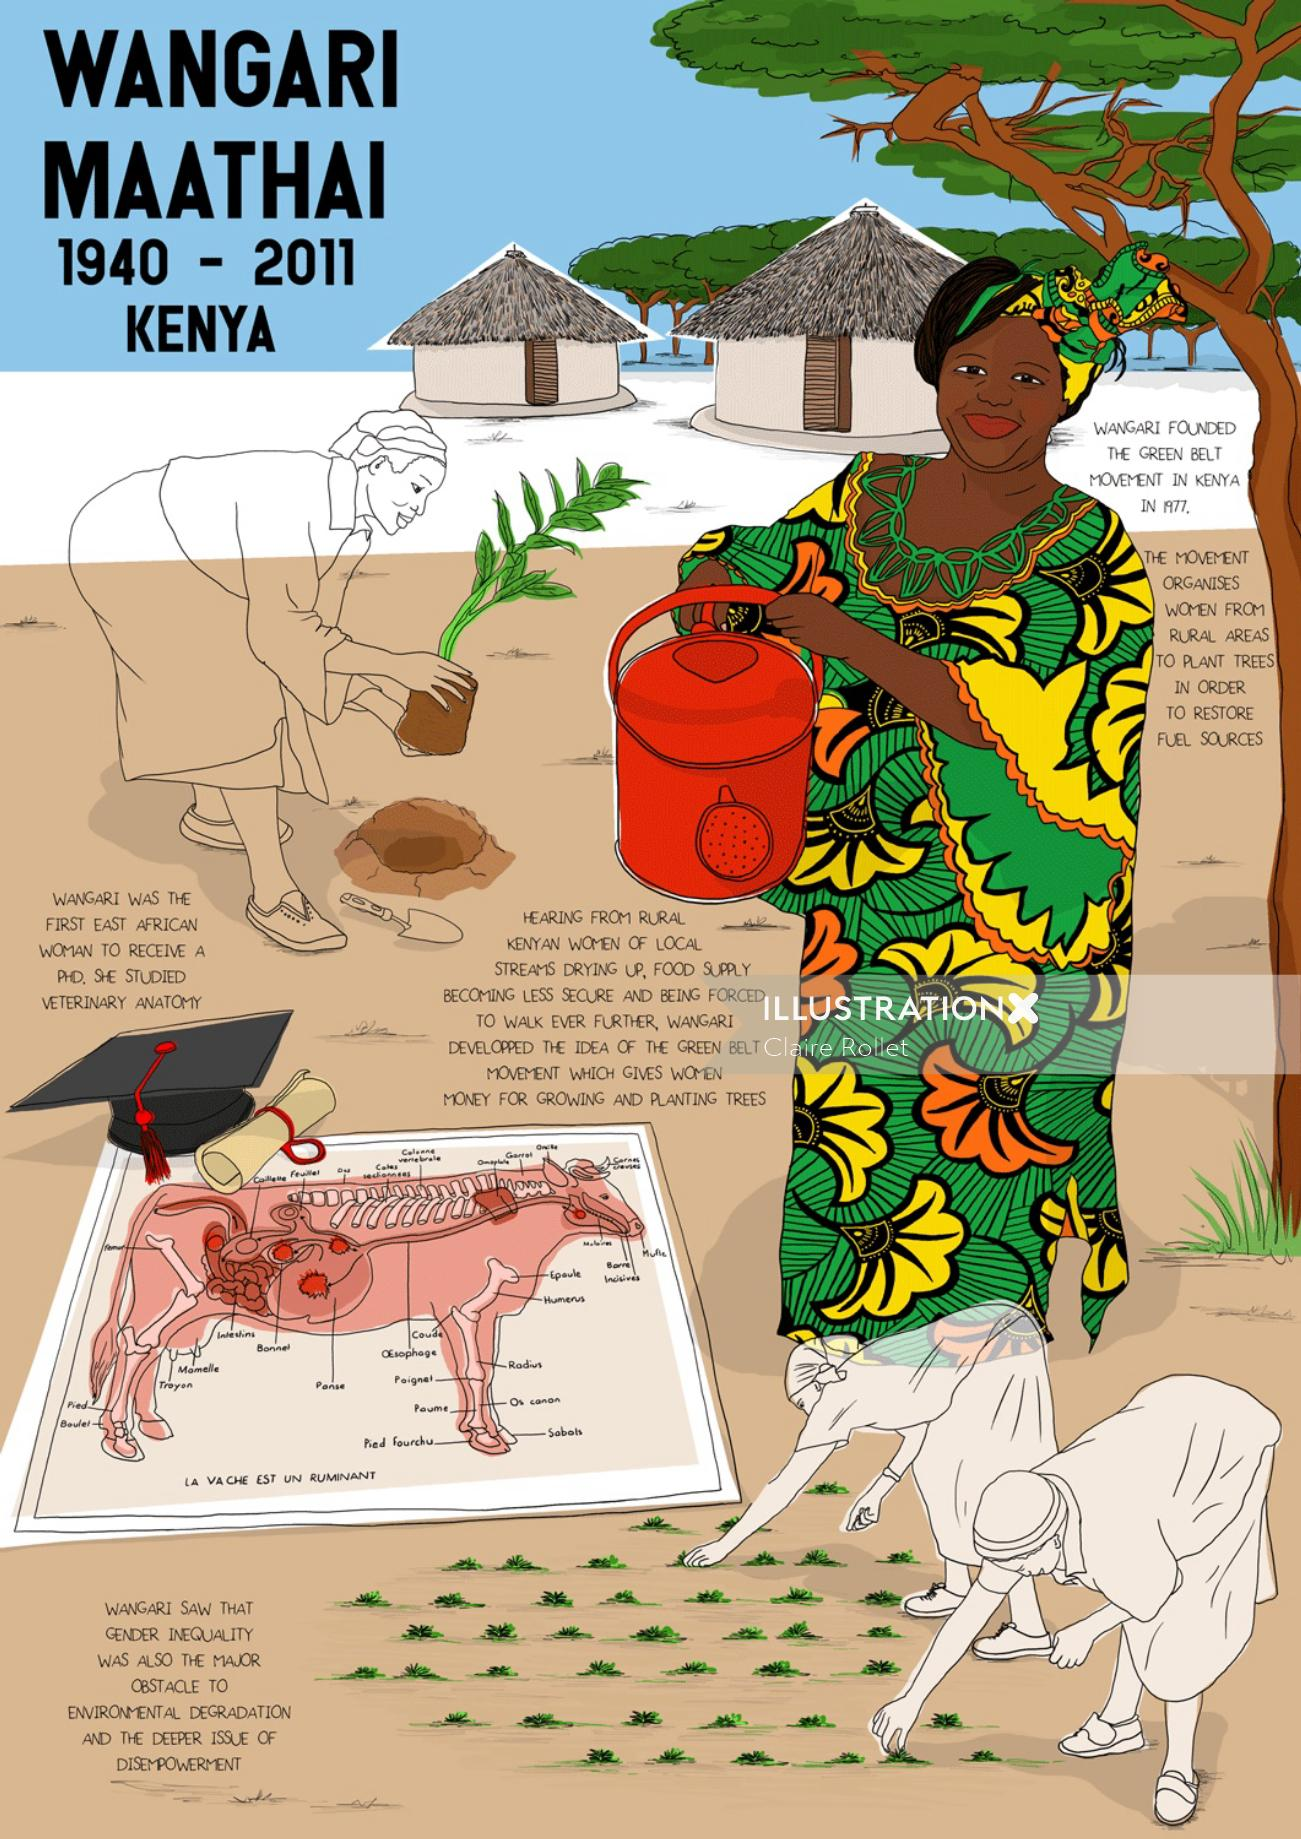 Lifestyle Illustration Of Wangari Maathai